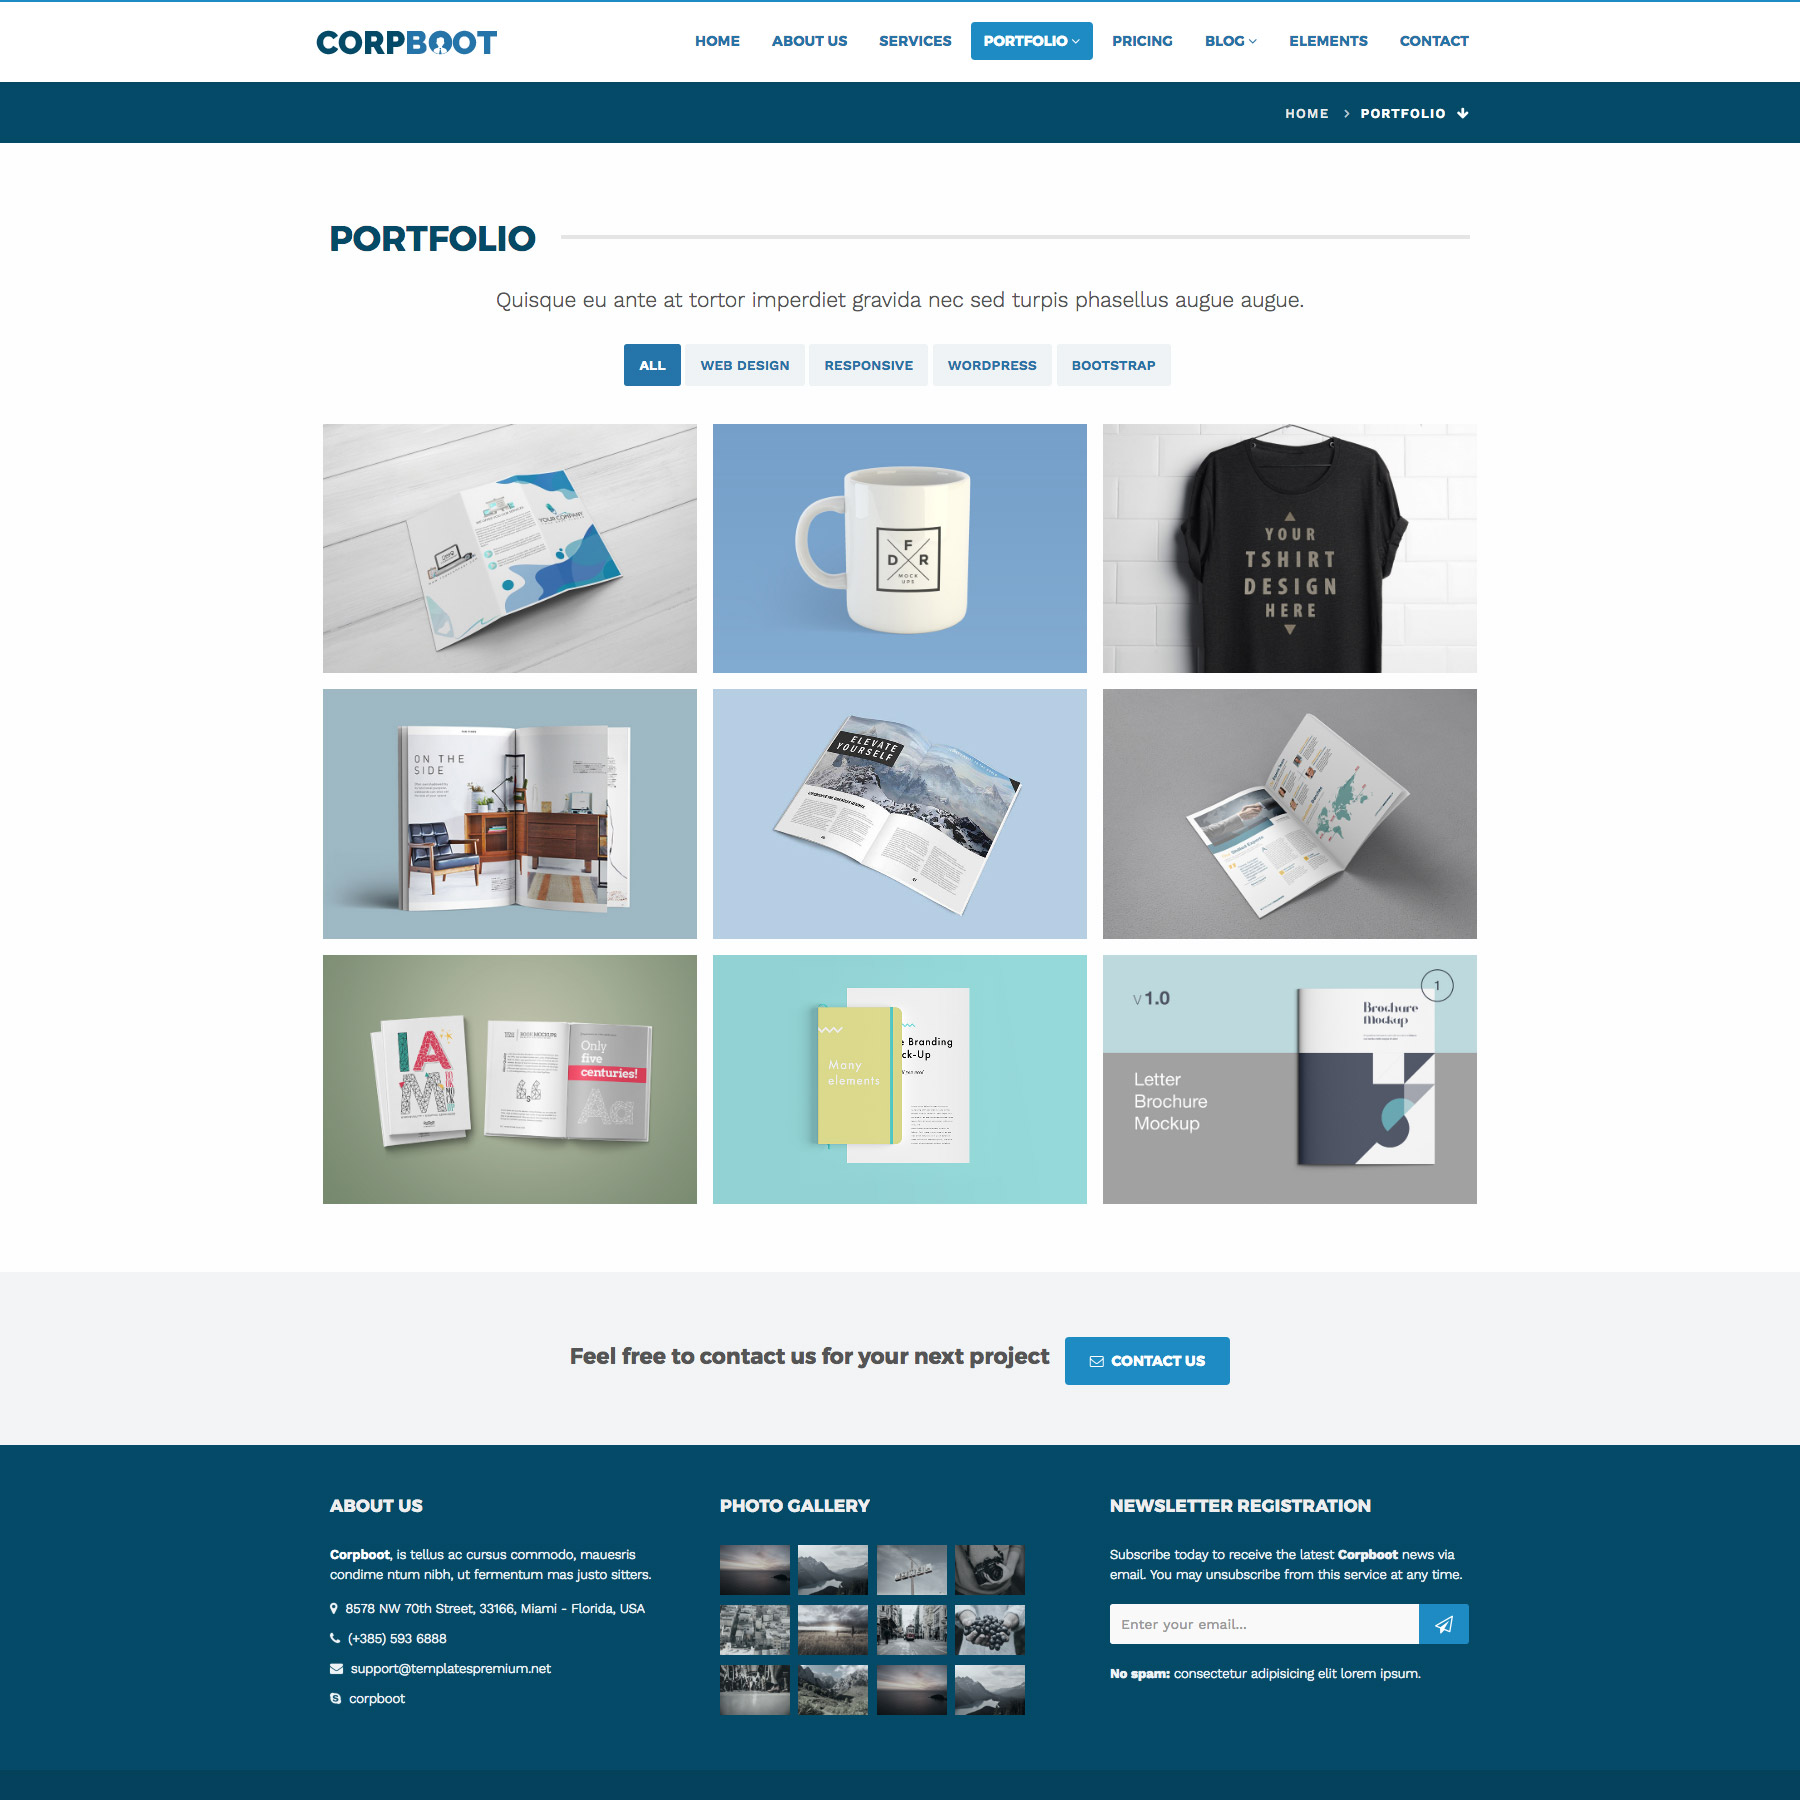 corpboot corporate website template themes templates. Black Bedroom Furniture Sets. Home Design Ideas